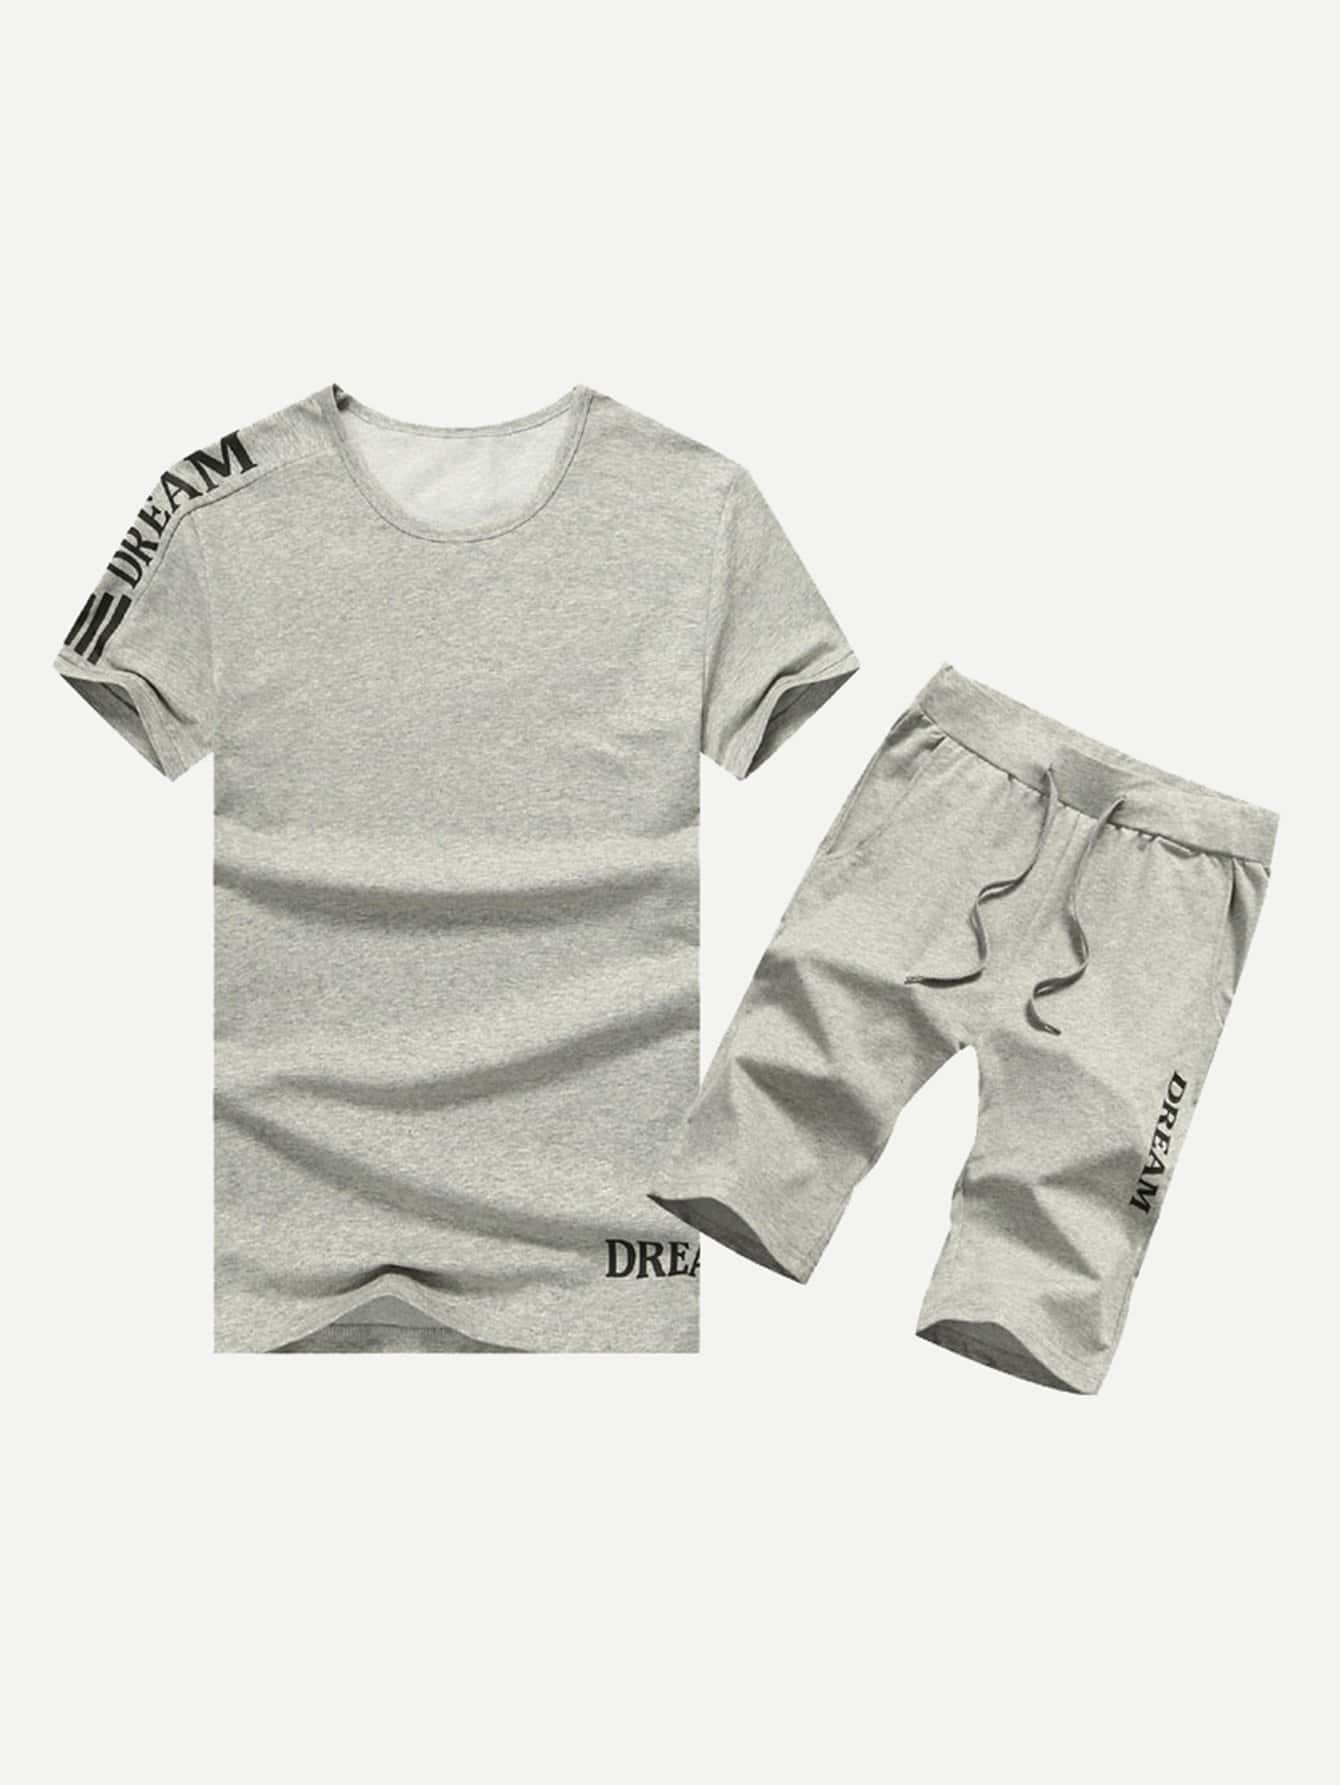 Men Letter Print Tee With Drawstring Shorts letter print hooded tee with shorts